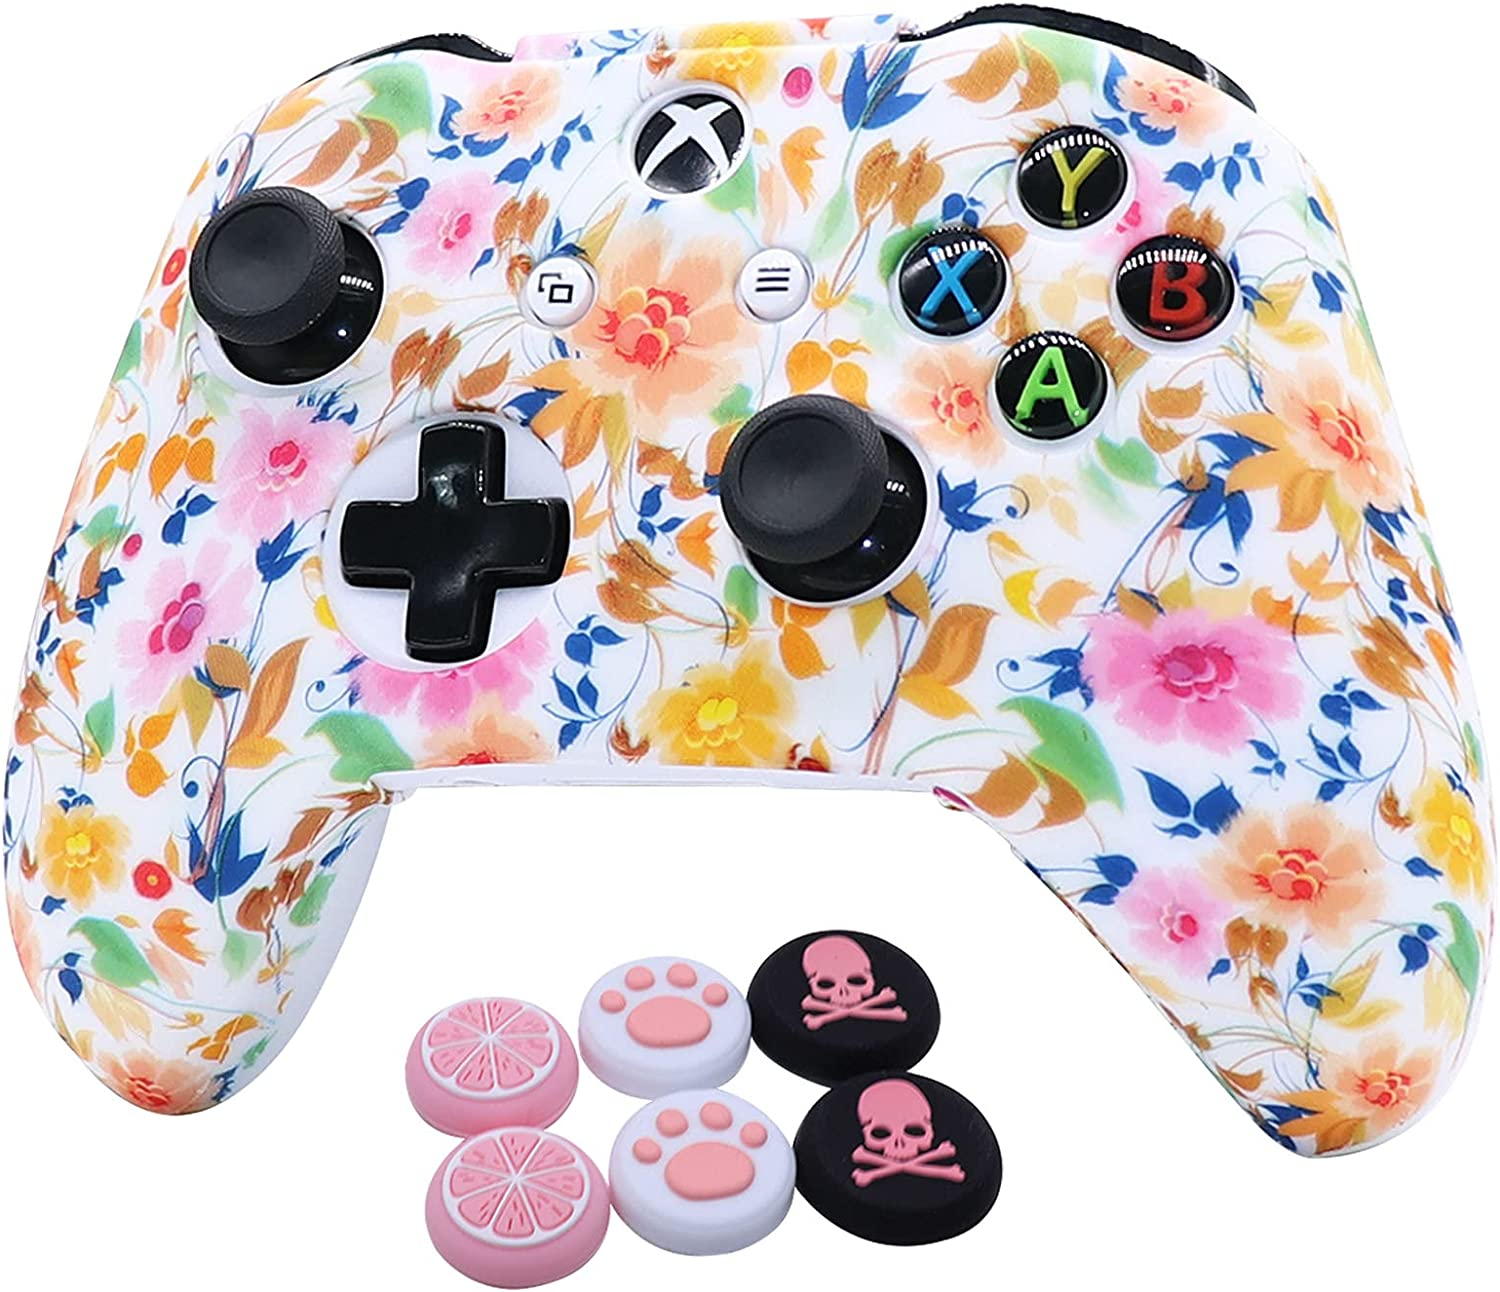 Pink Xbox Max 77% OFF online shopping One Controller Skins Silicone RALAN S Cover